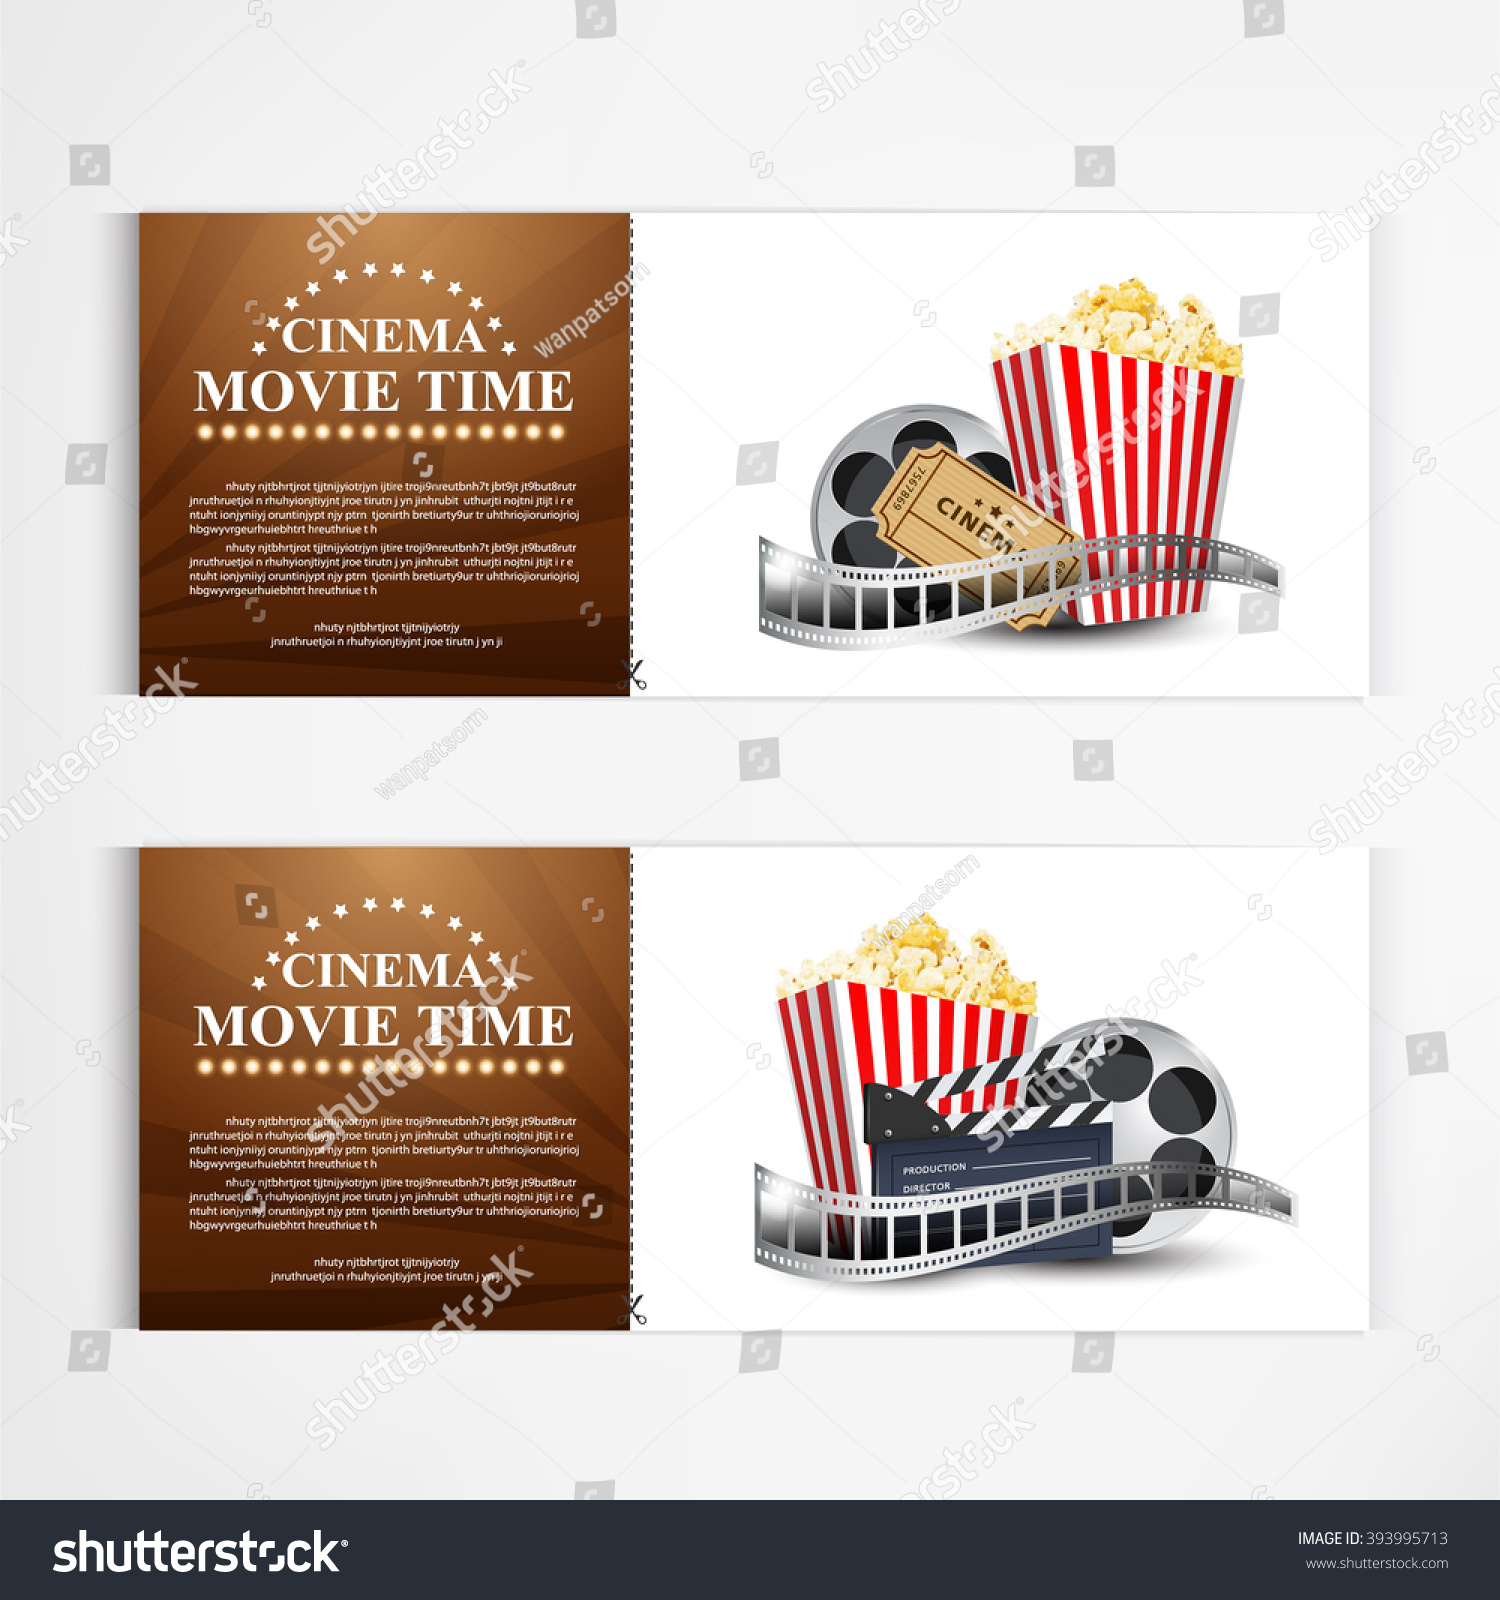 Cinema Movie Poster Template Modern Pattern Vector Design Ez Canvas